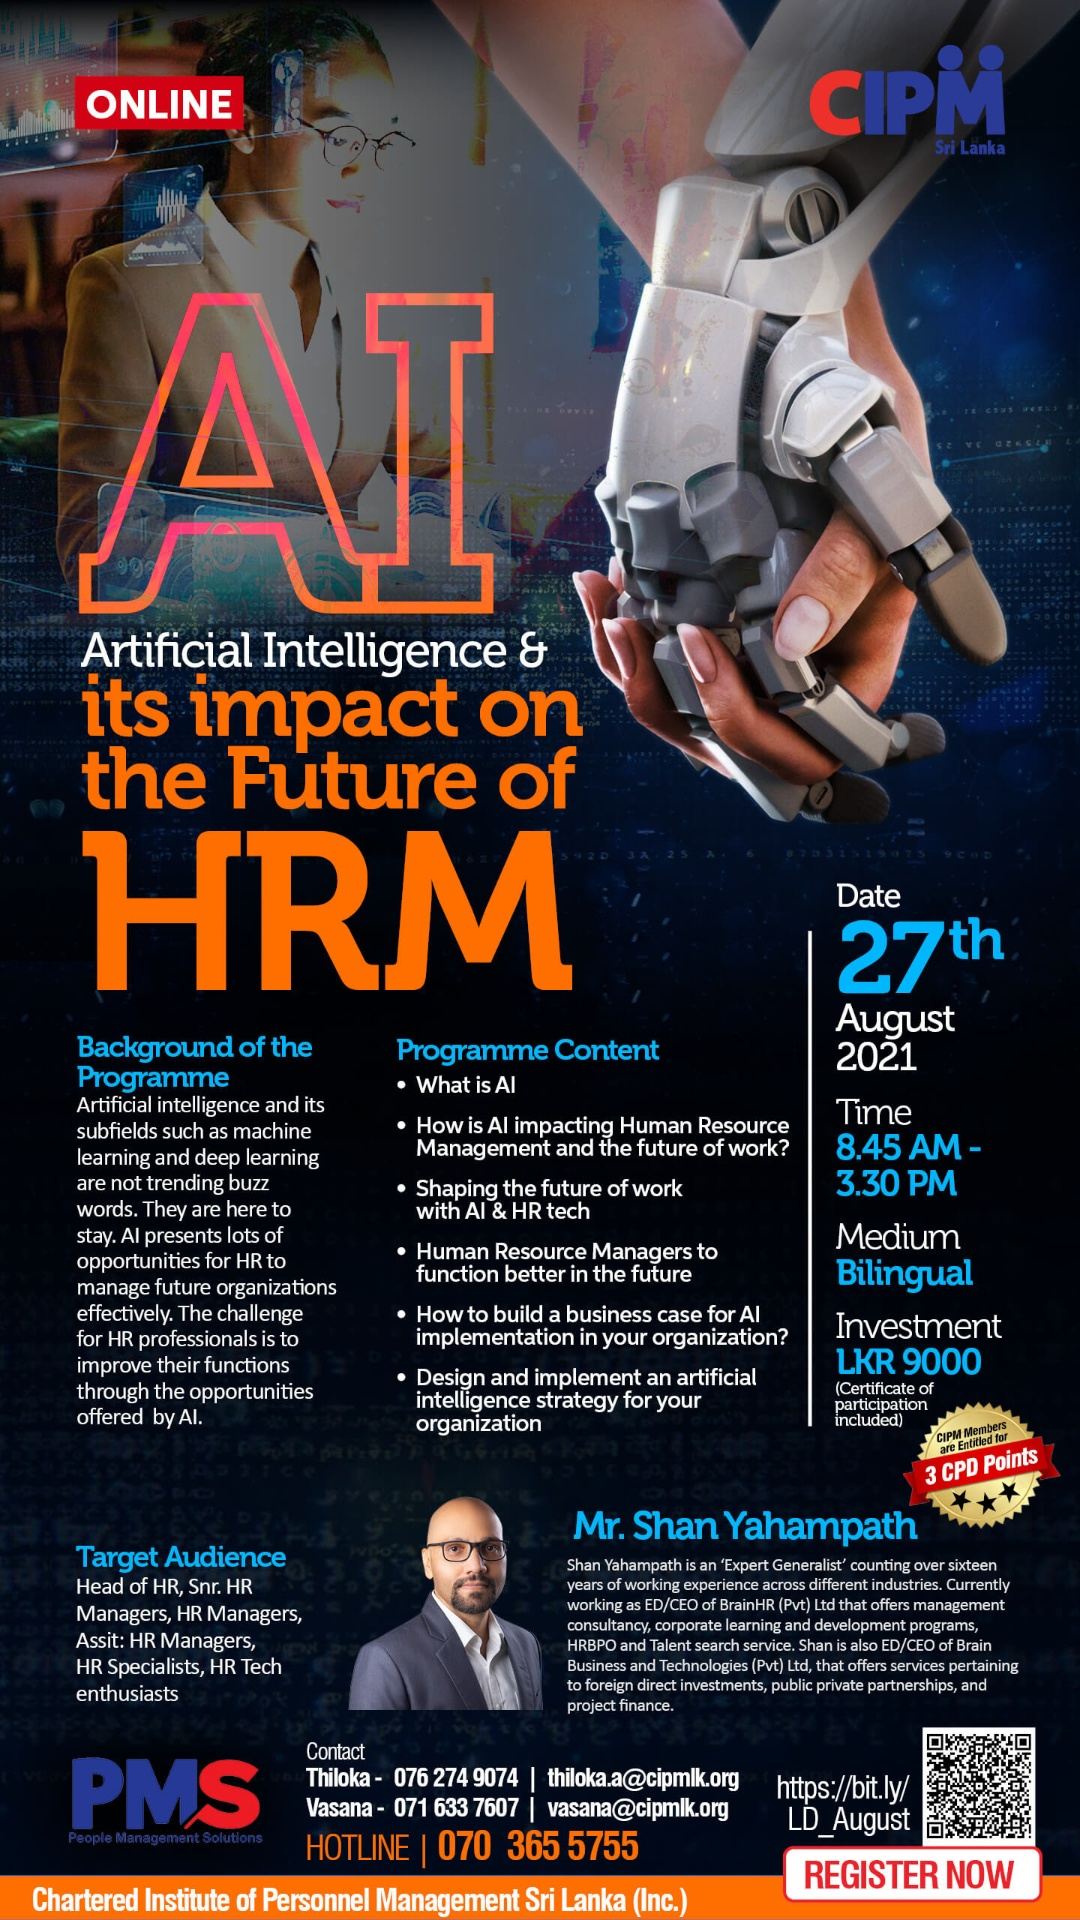 Artificial Intelligence and its impact on the Future of HRM